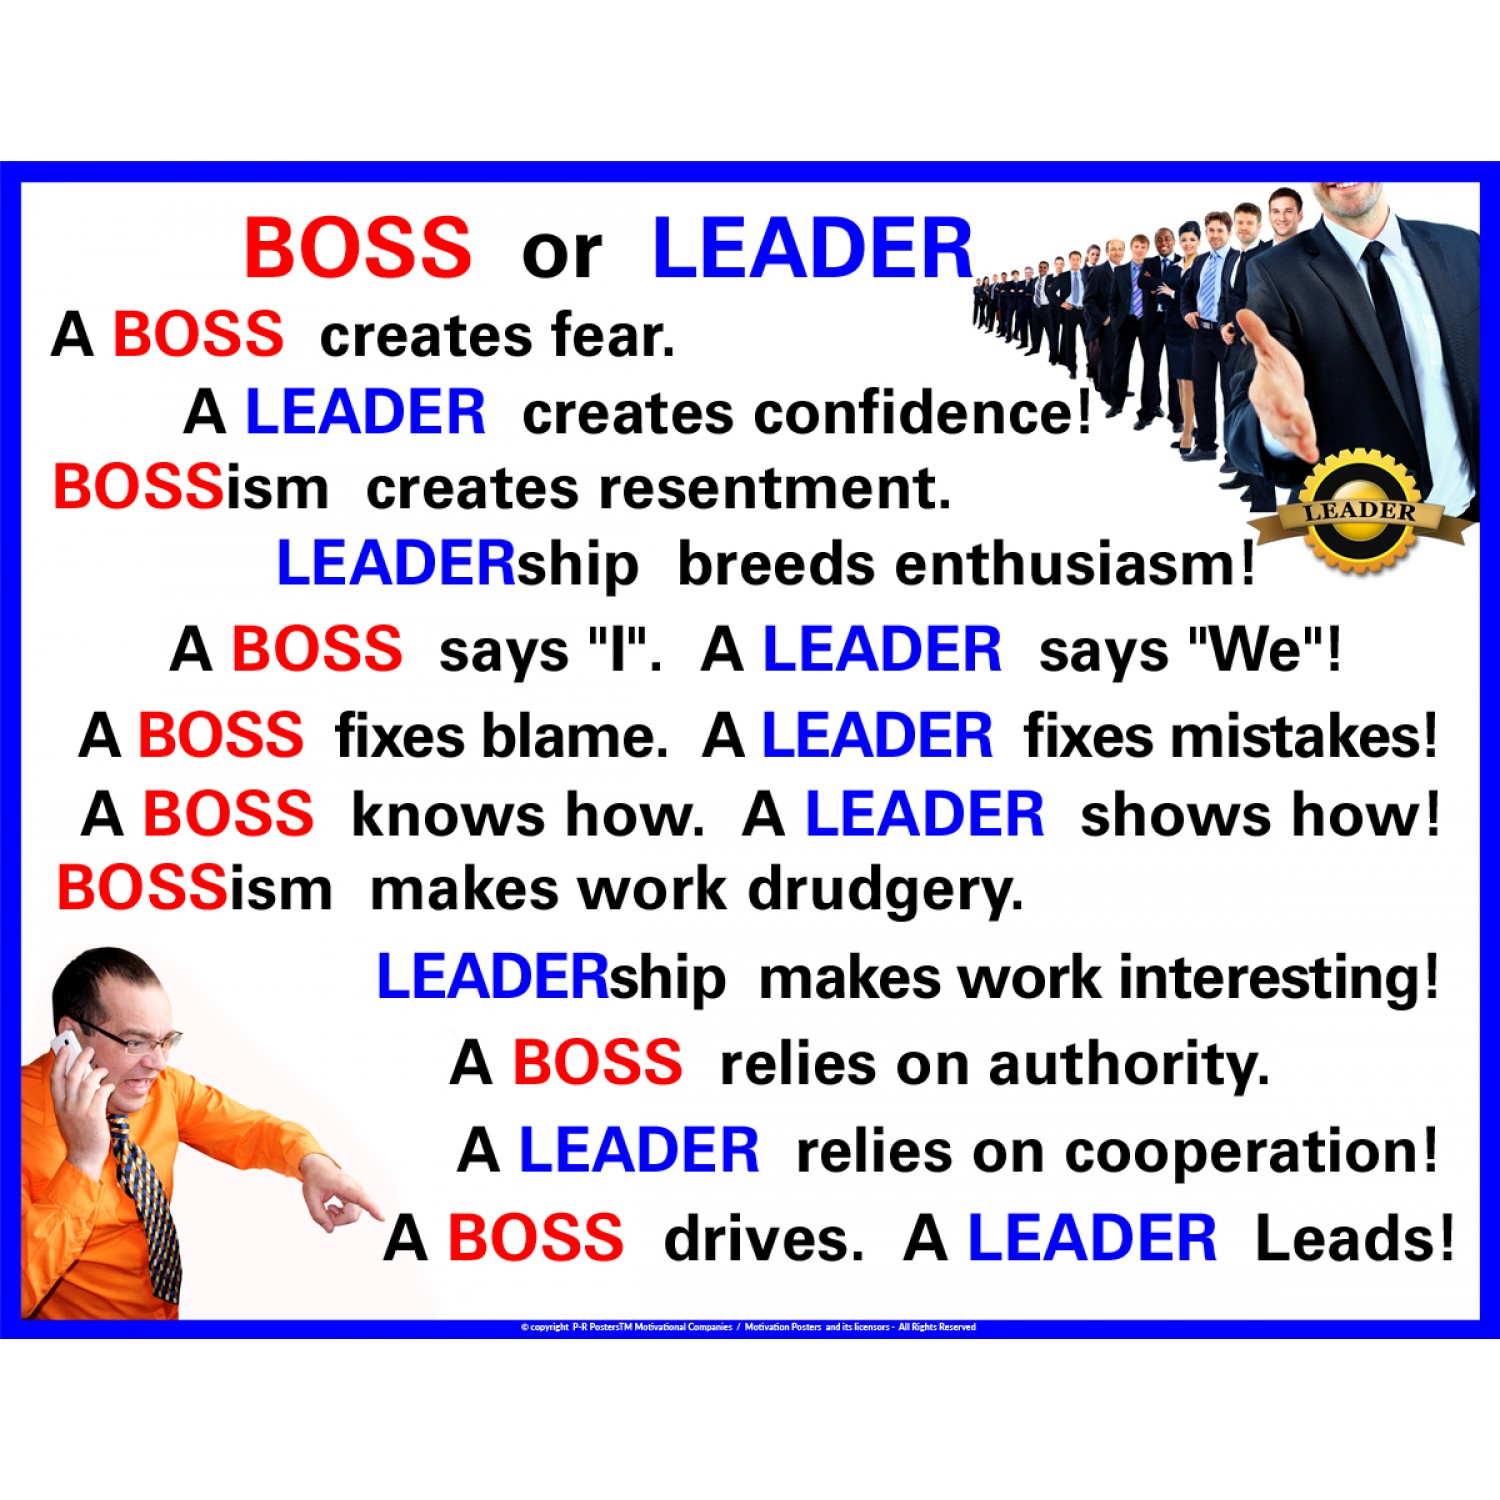 Boss or Leader?